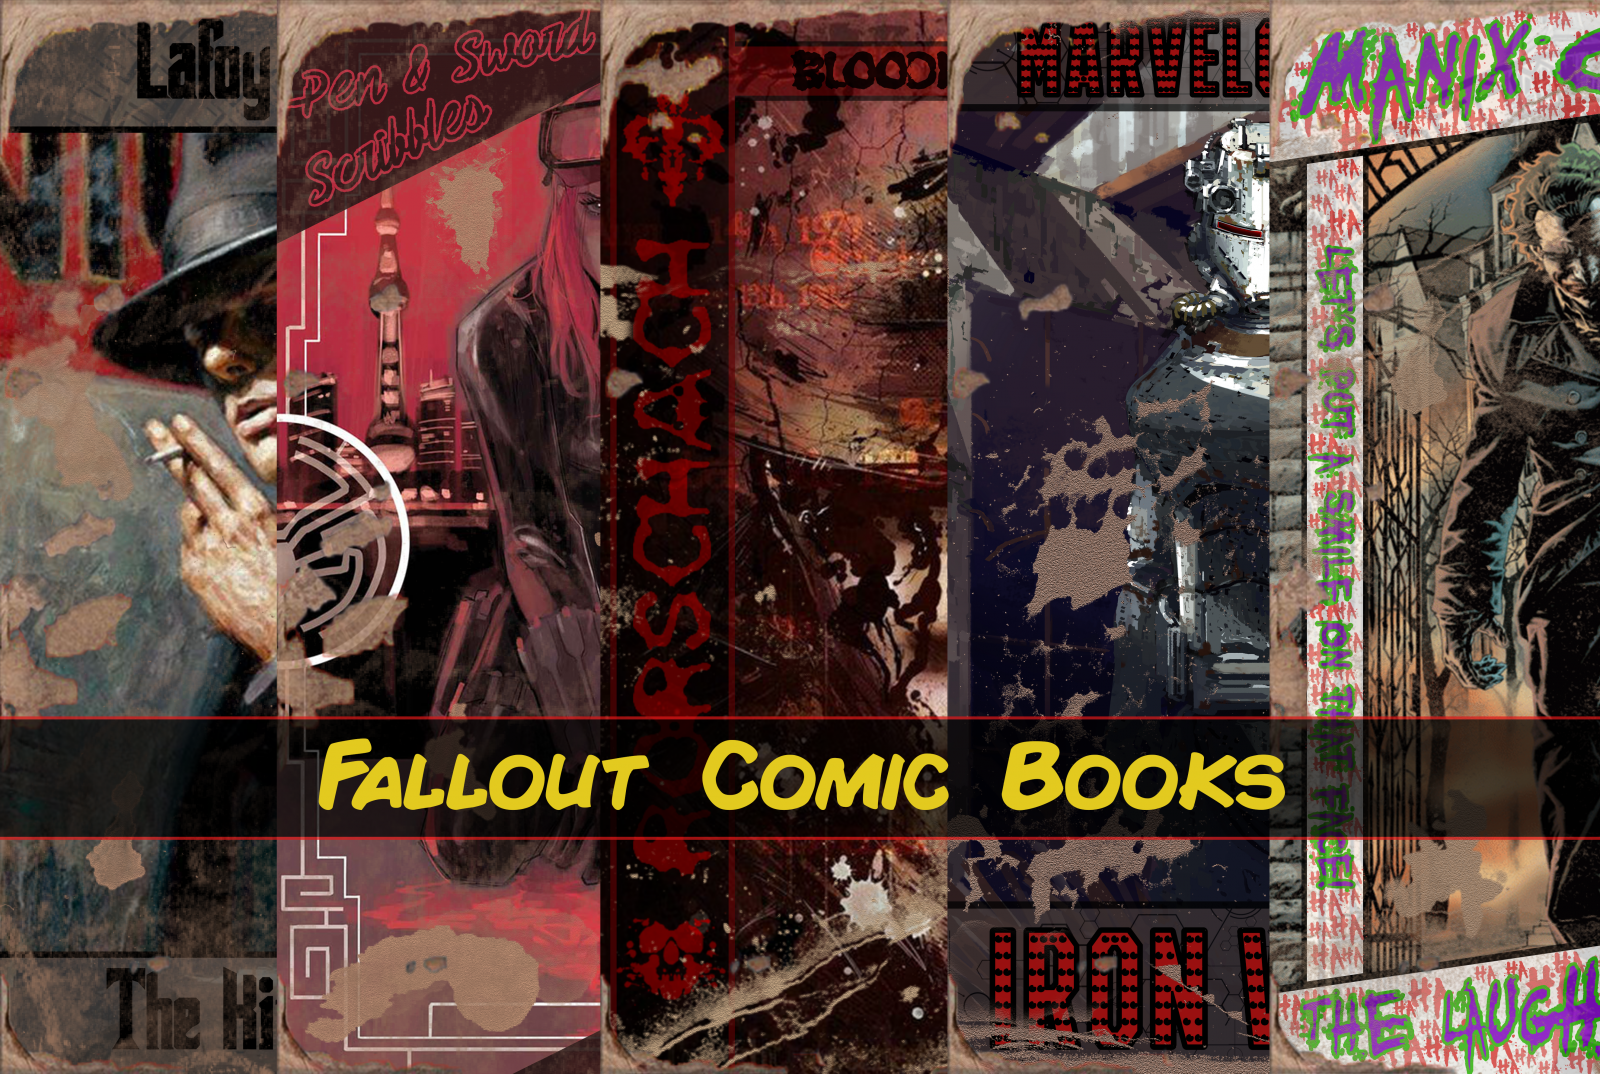 Fallout Comic Books